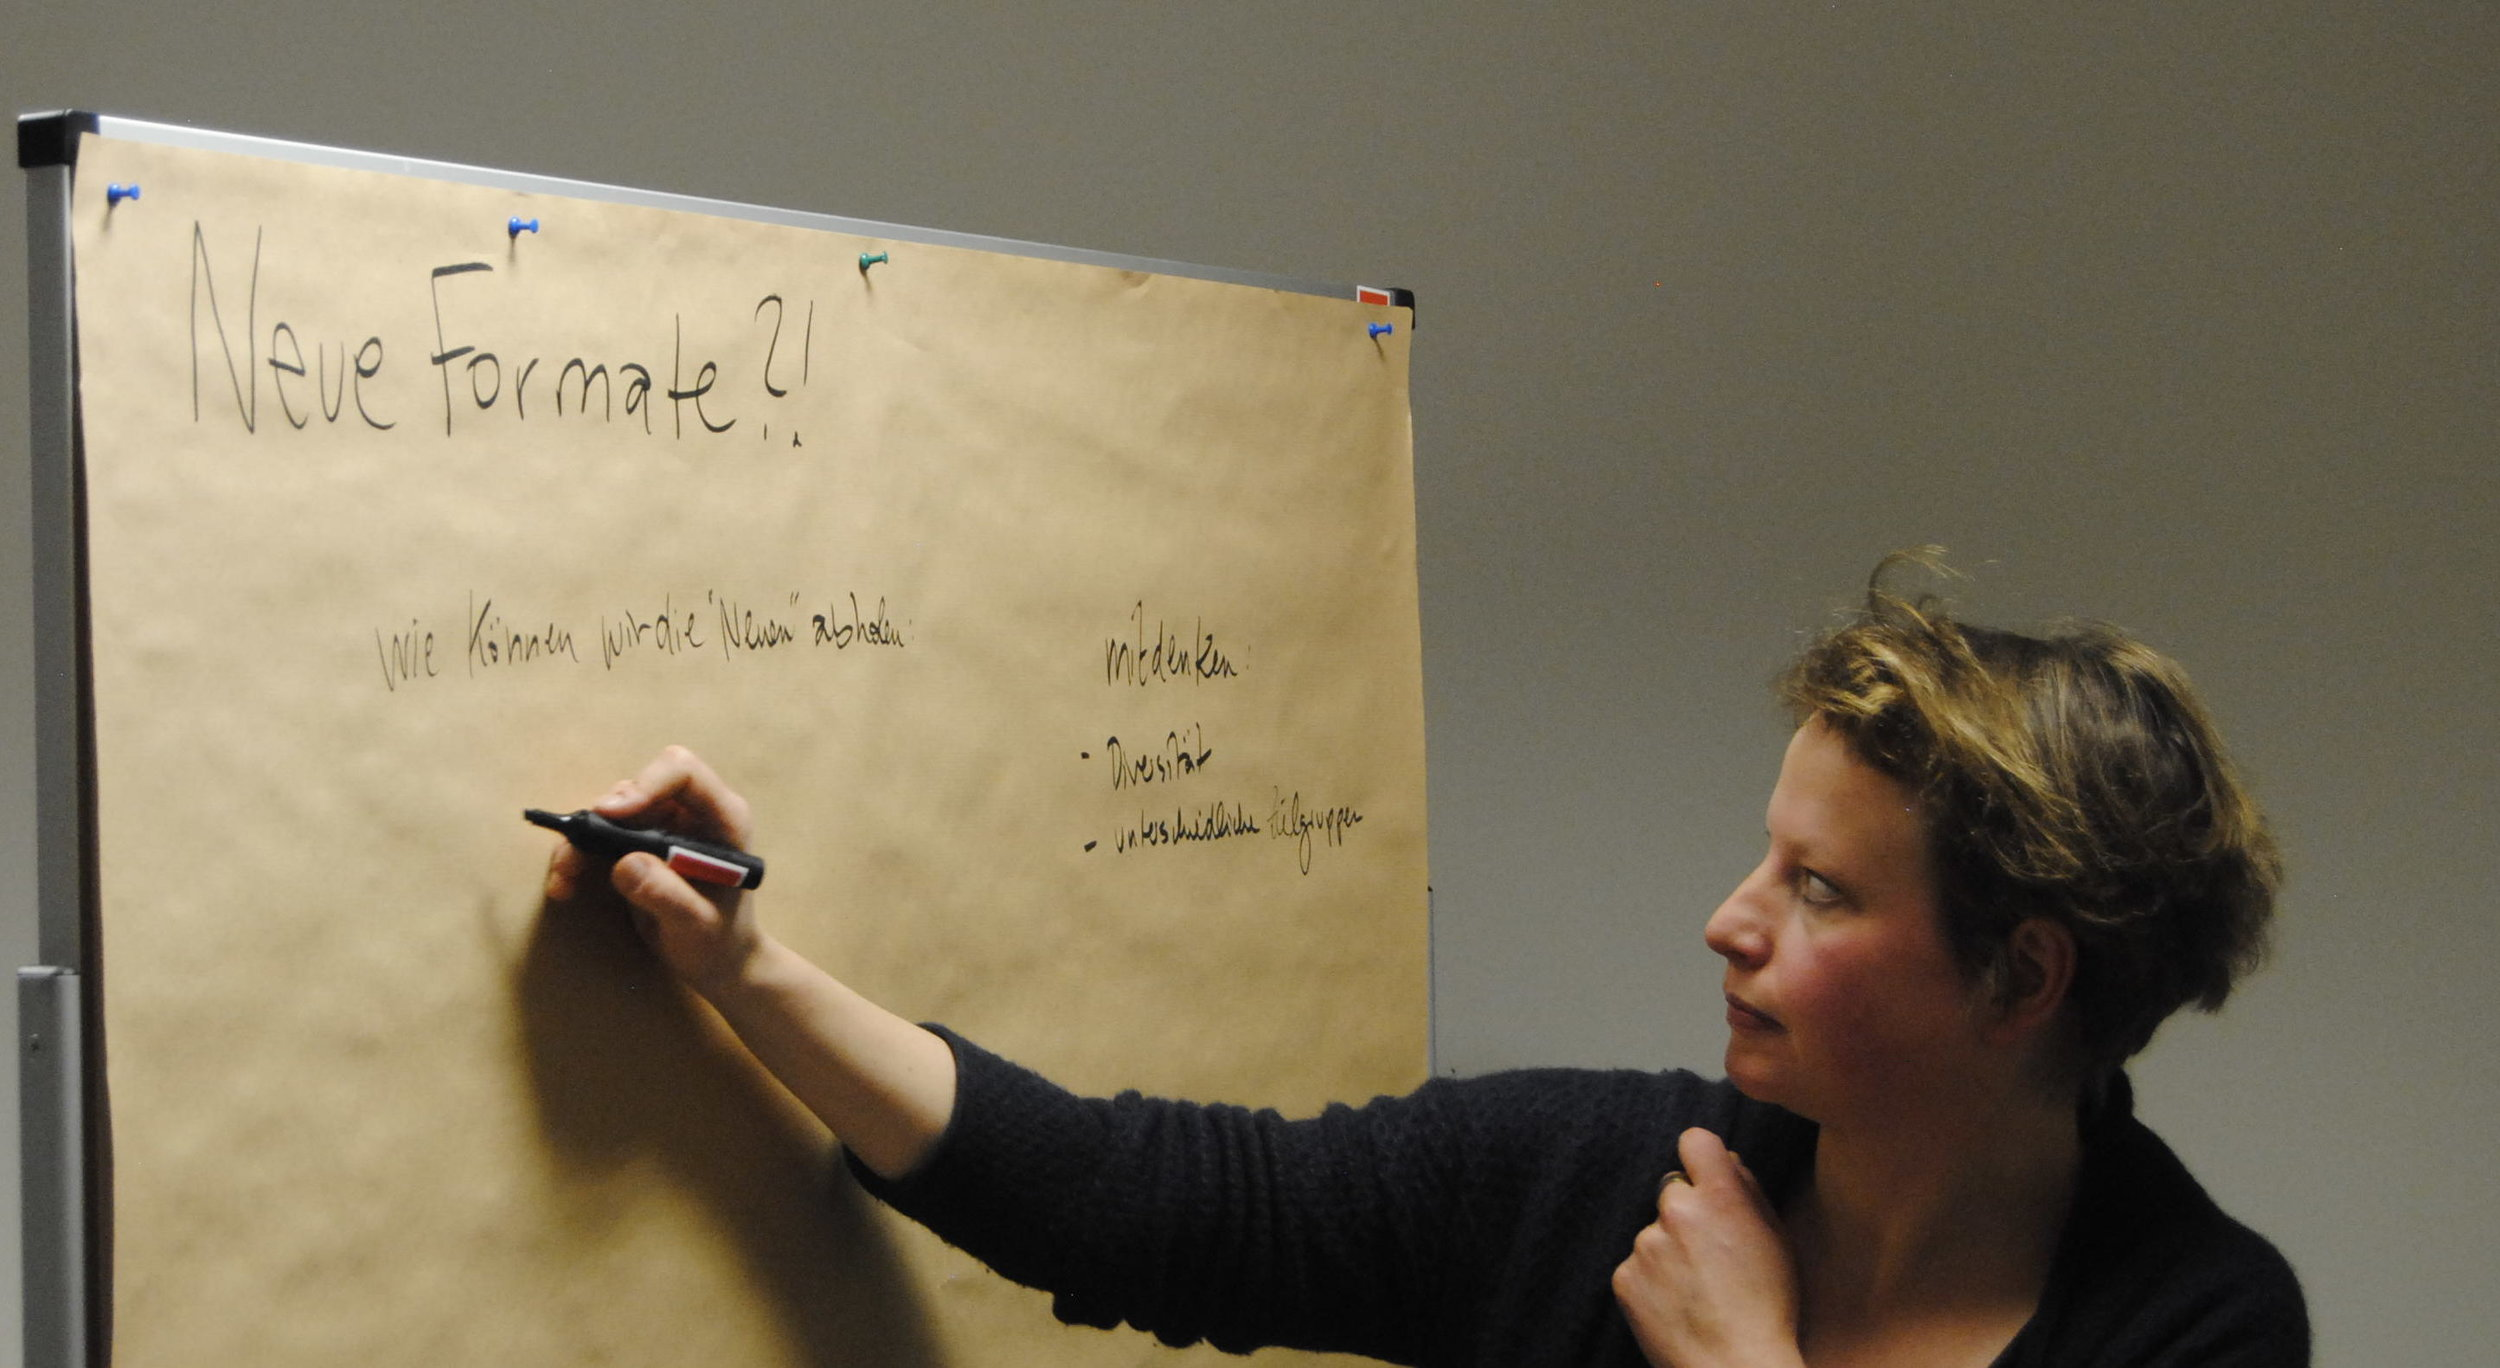 Discussion groups at the meeting worked to find new formats of outreach.